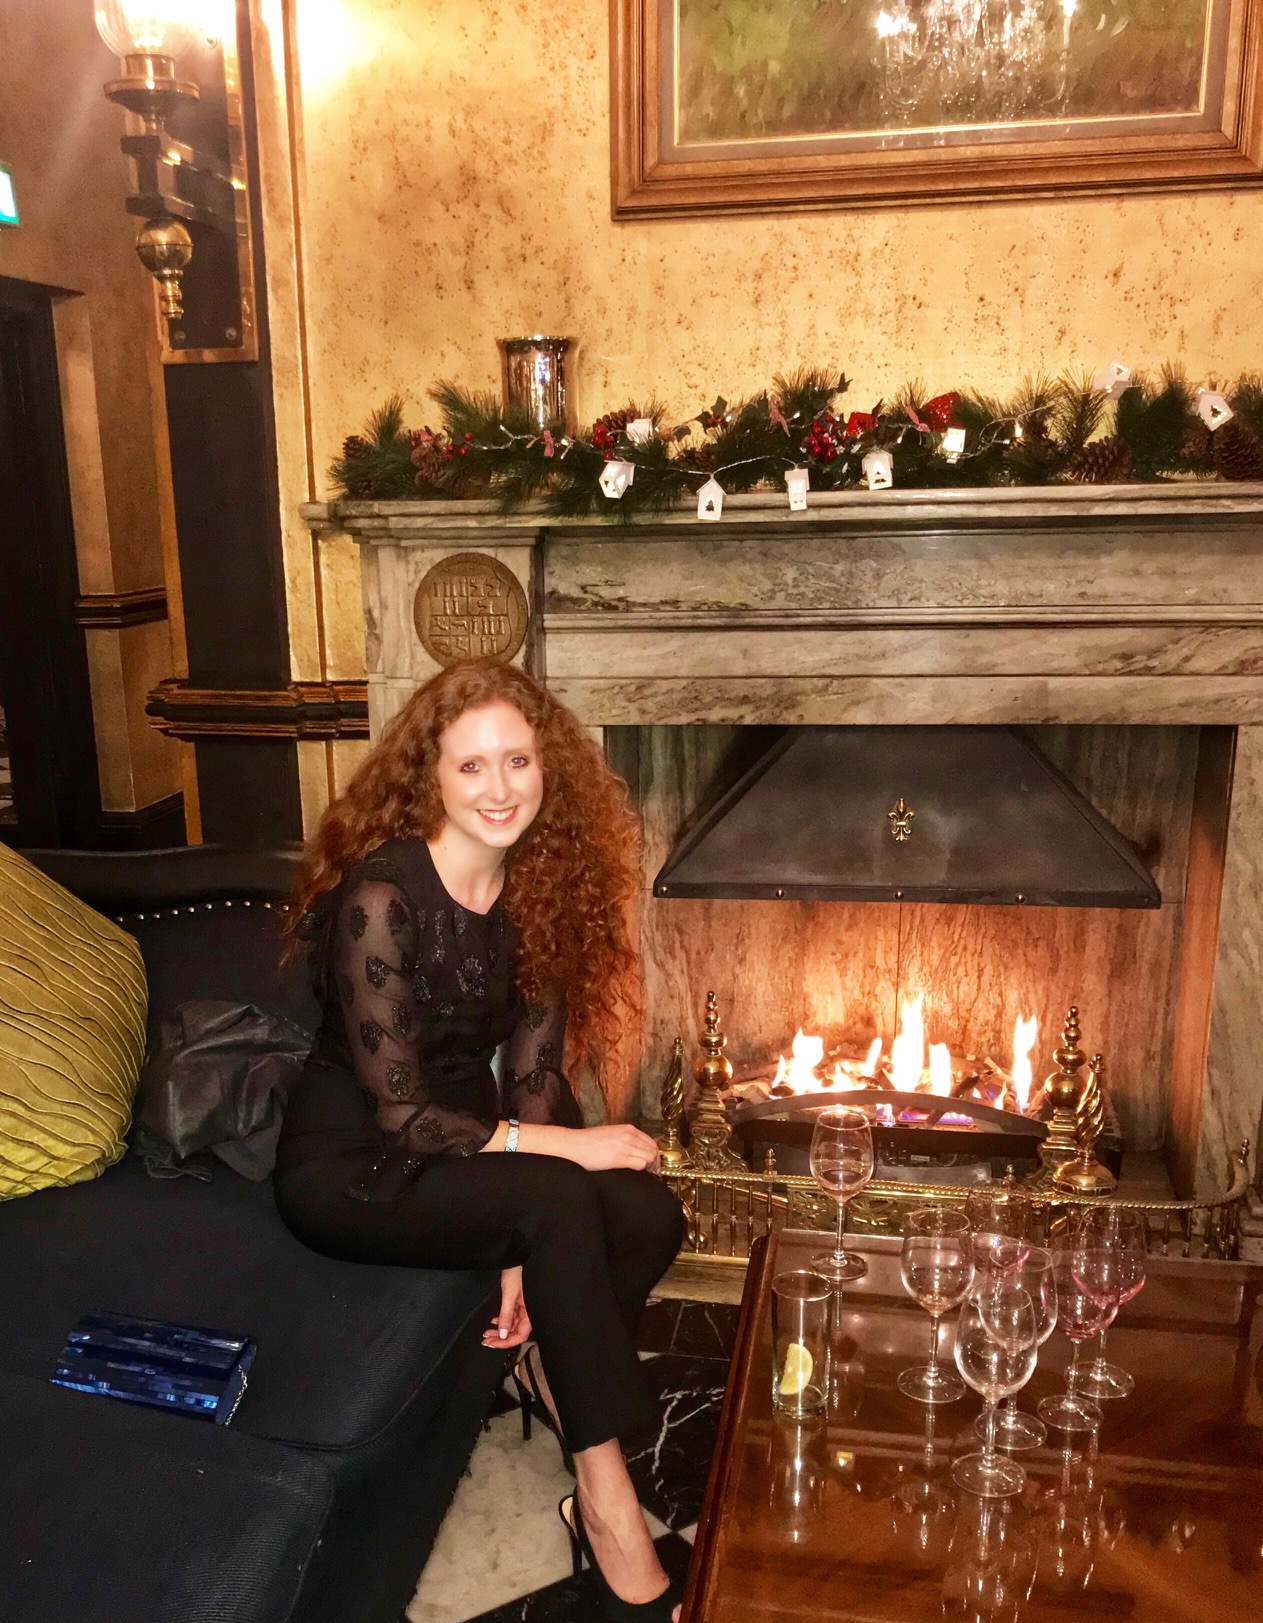 Toasting by the fire at the Meyrick Hotel